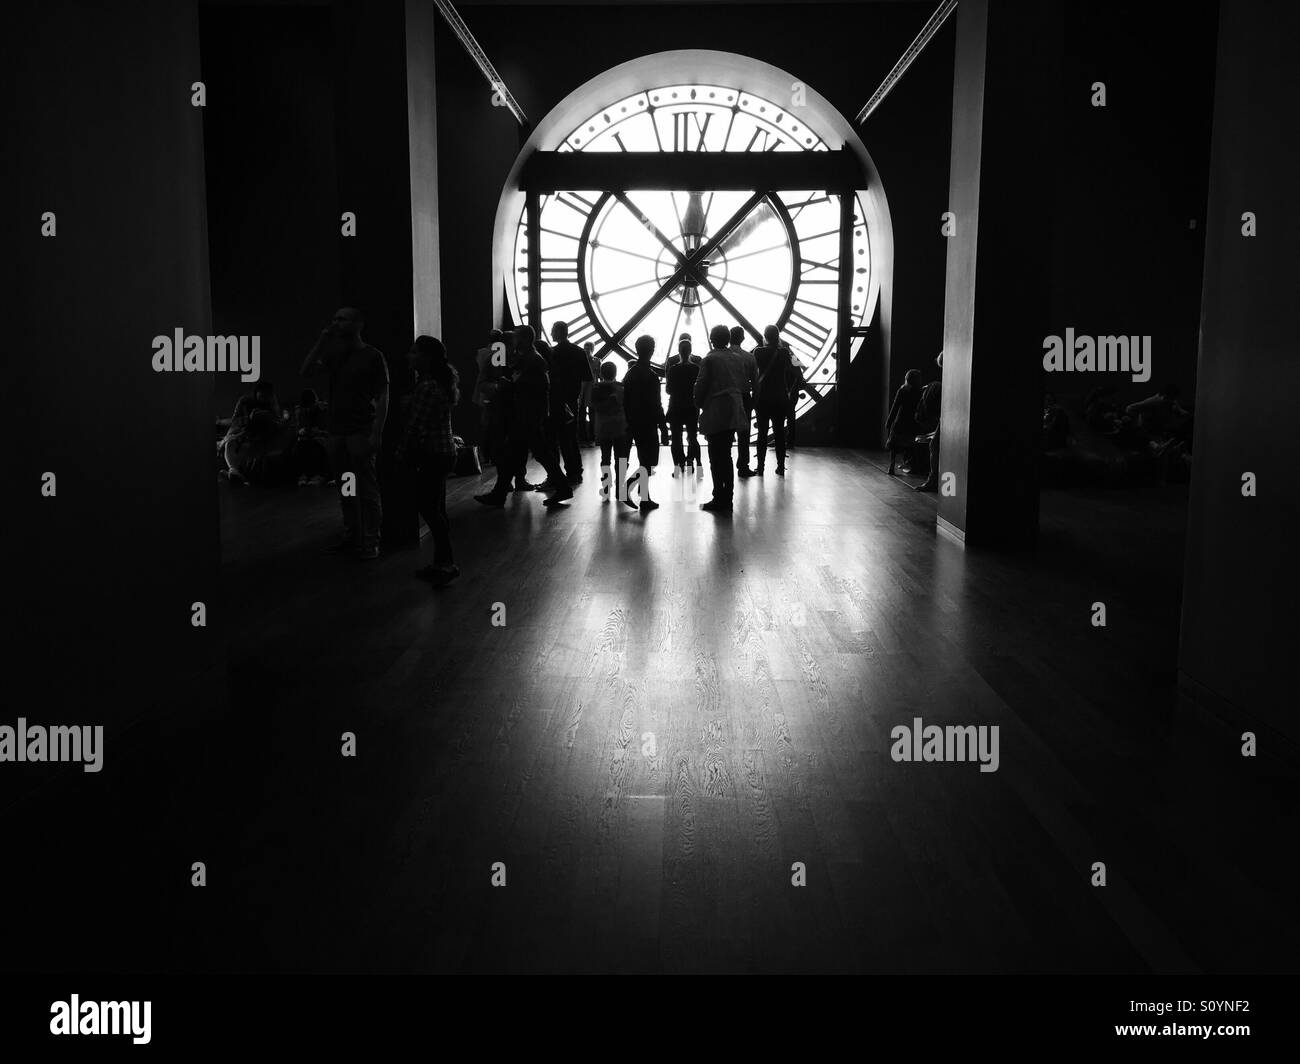 The famous clock inside the musee d Orsay in Paris, France with a crowd in front of it. - Stock Image